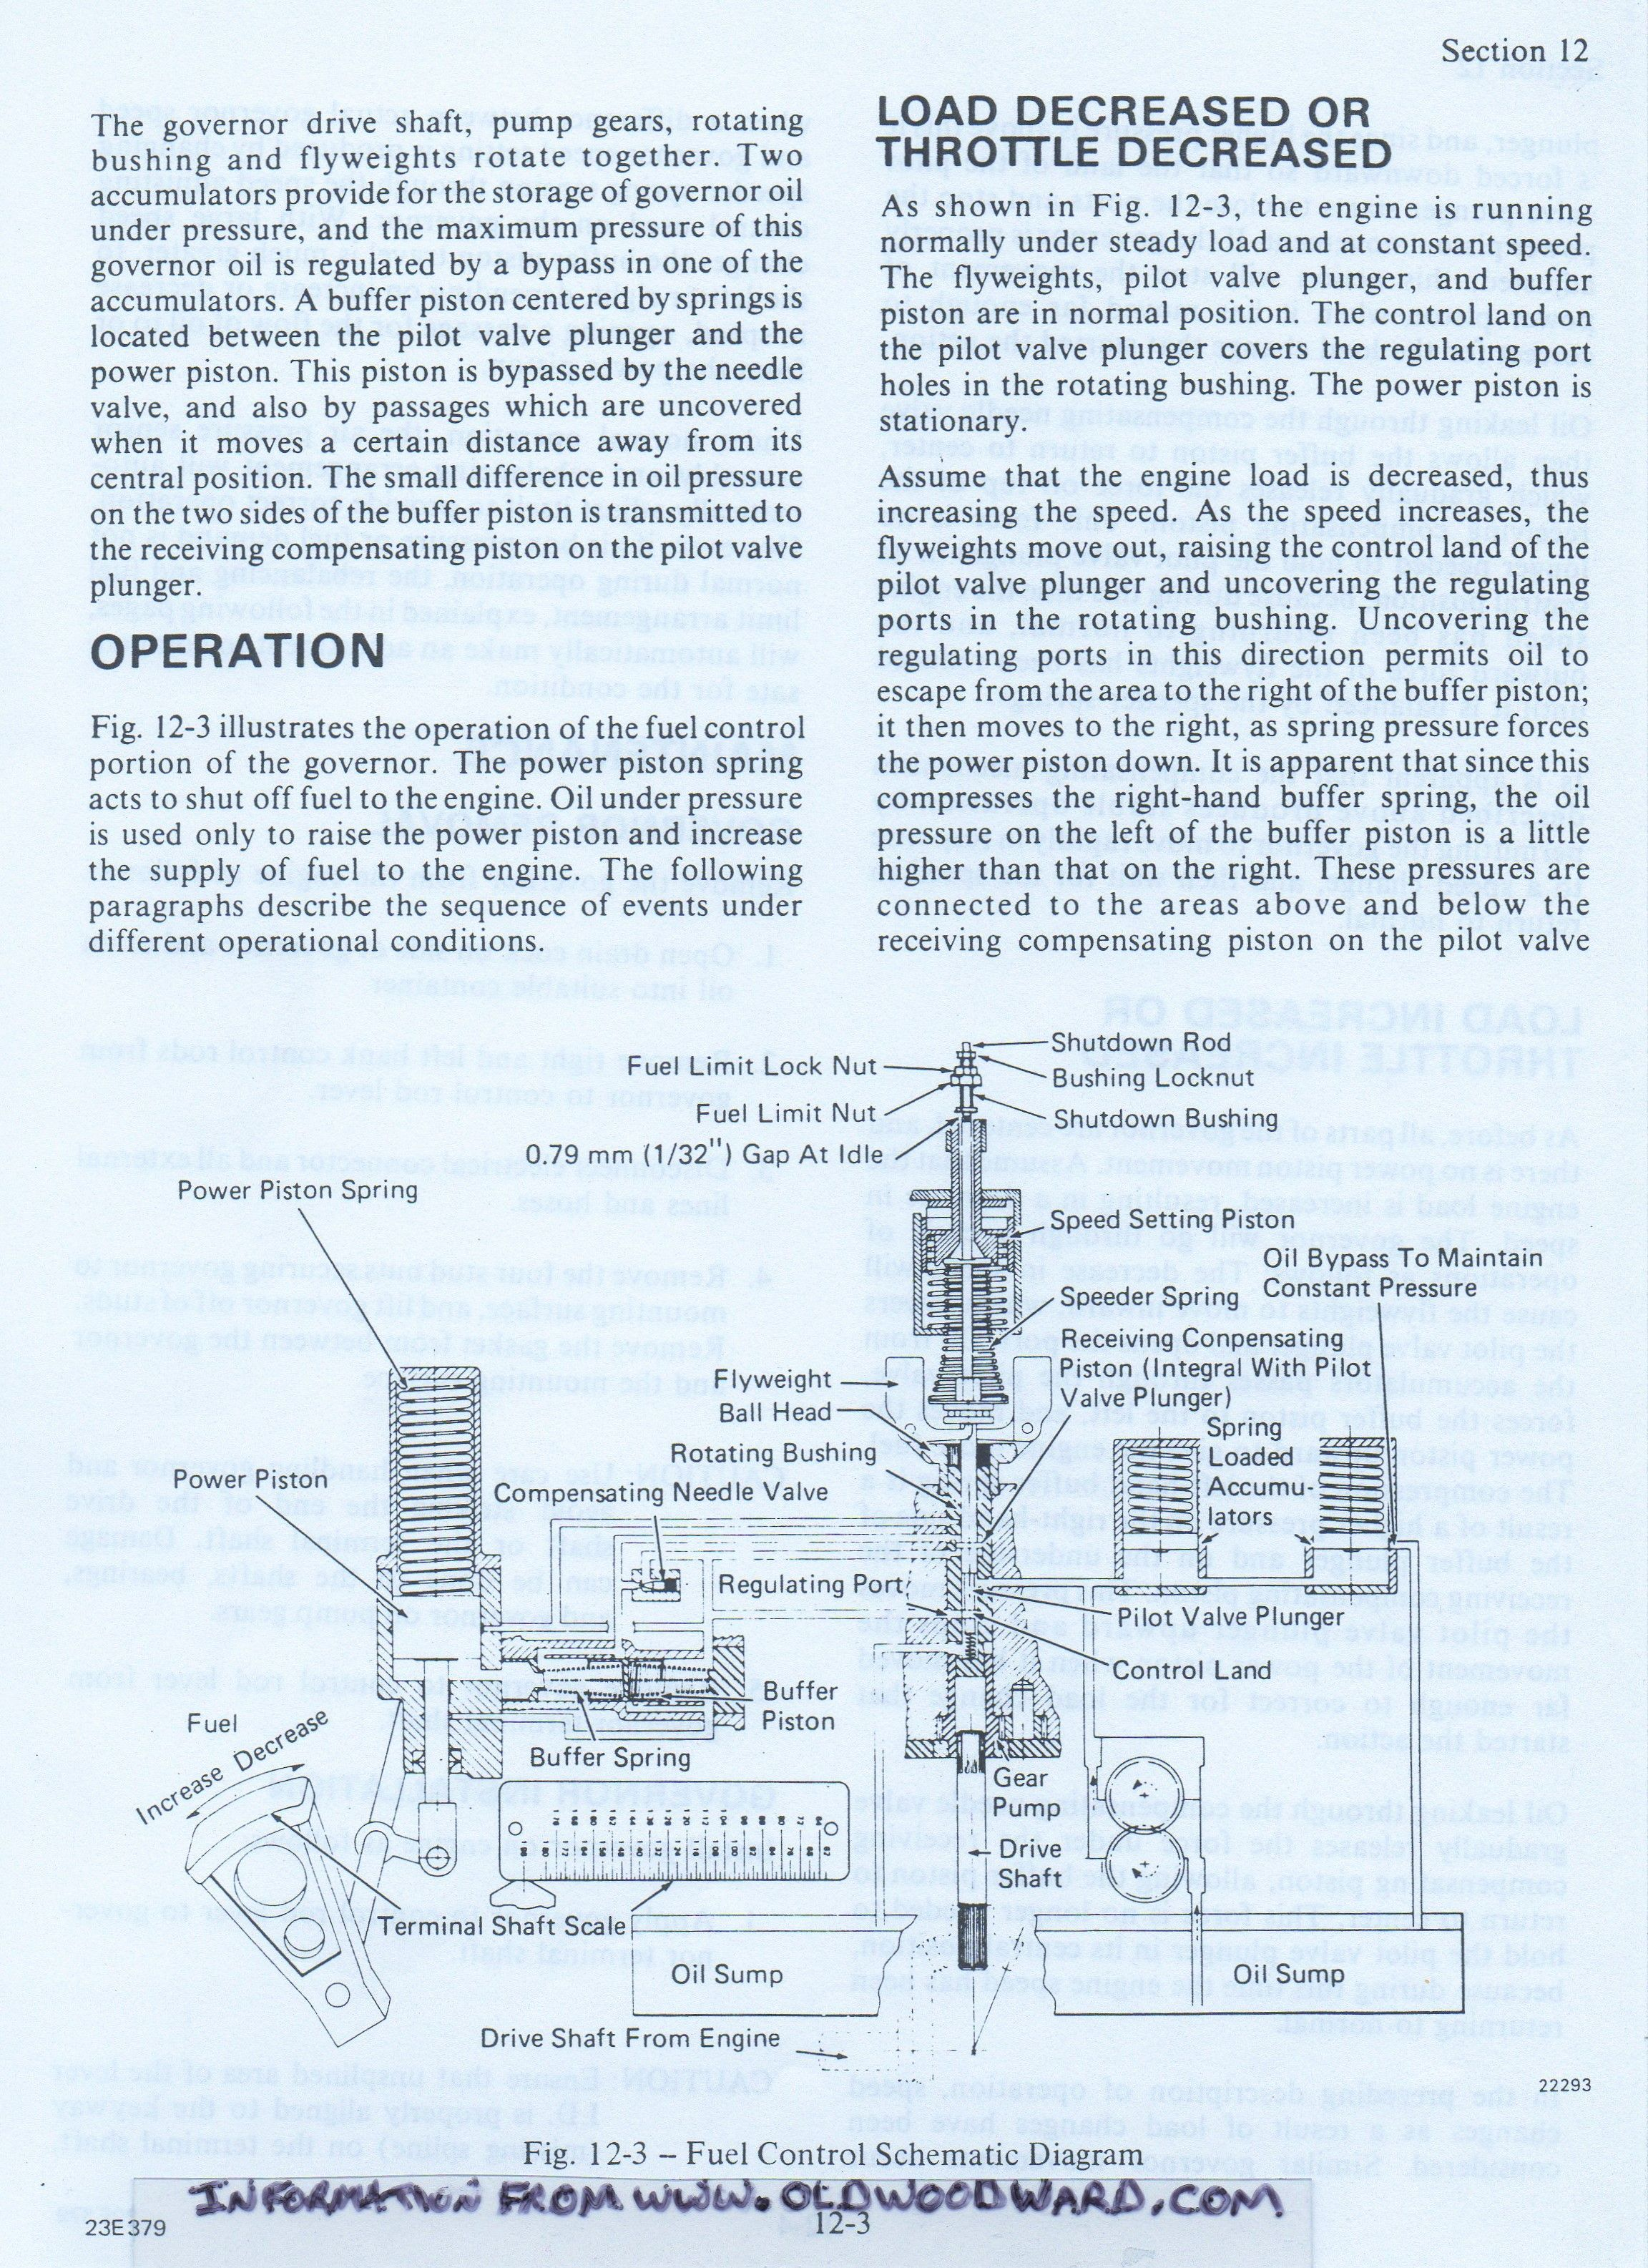 Fuel Control Schematic For A Diesel Engine Drawings Diagram